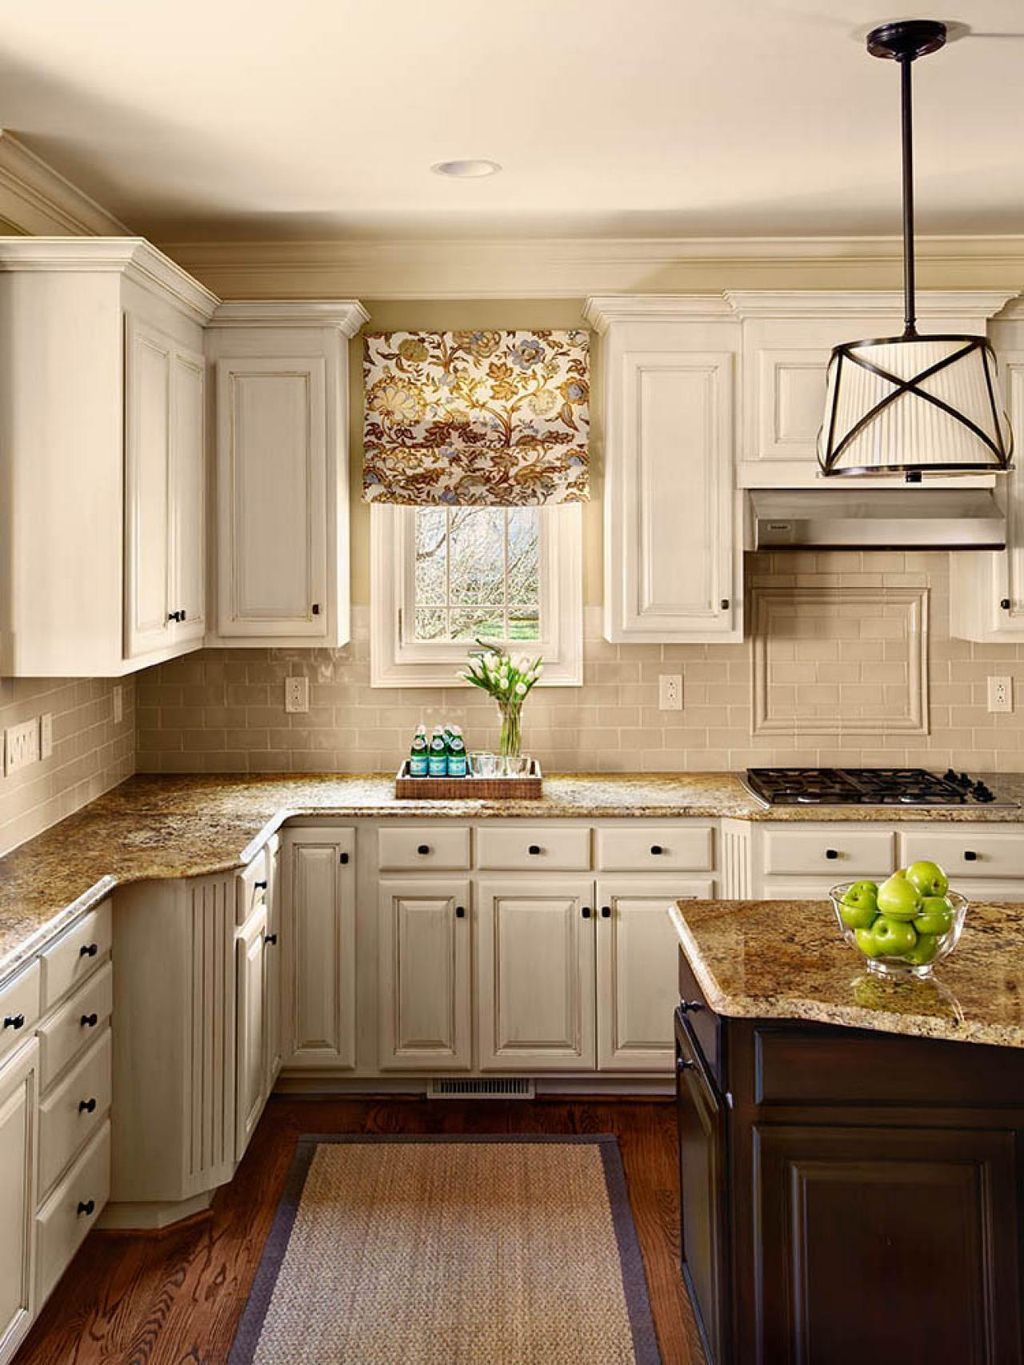 Delightful 50 Inspiring Cream Colored Kitchen Cabinets Decor Ideas (28) Awesome Design